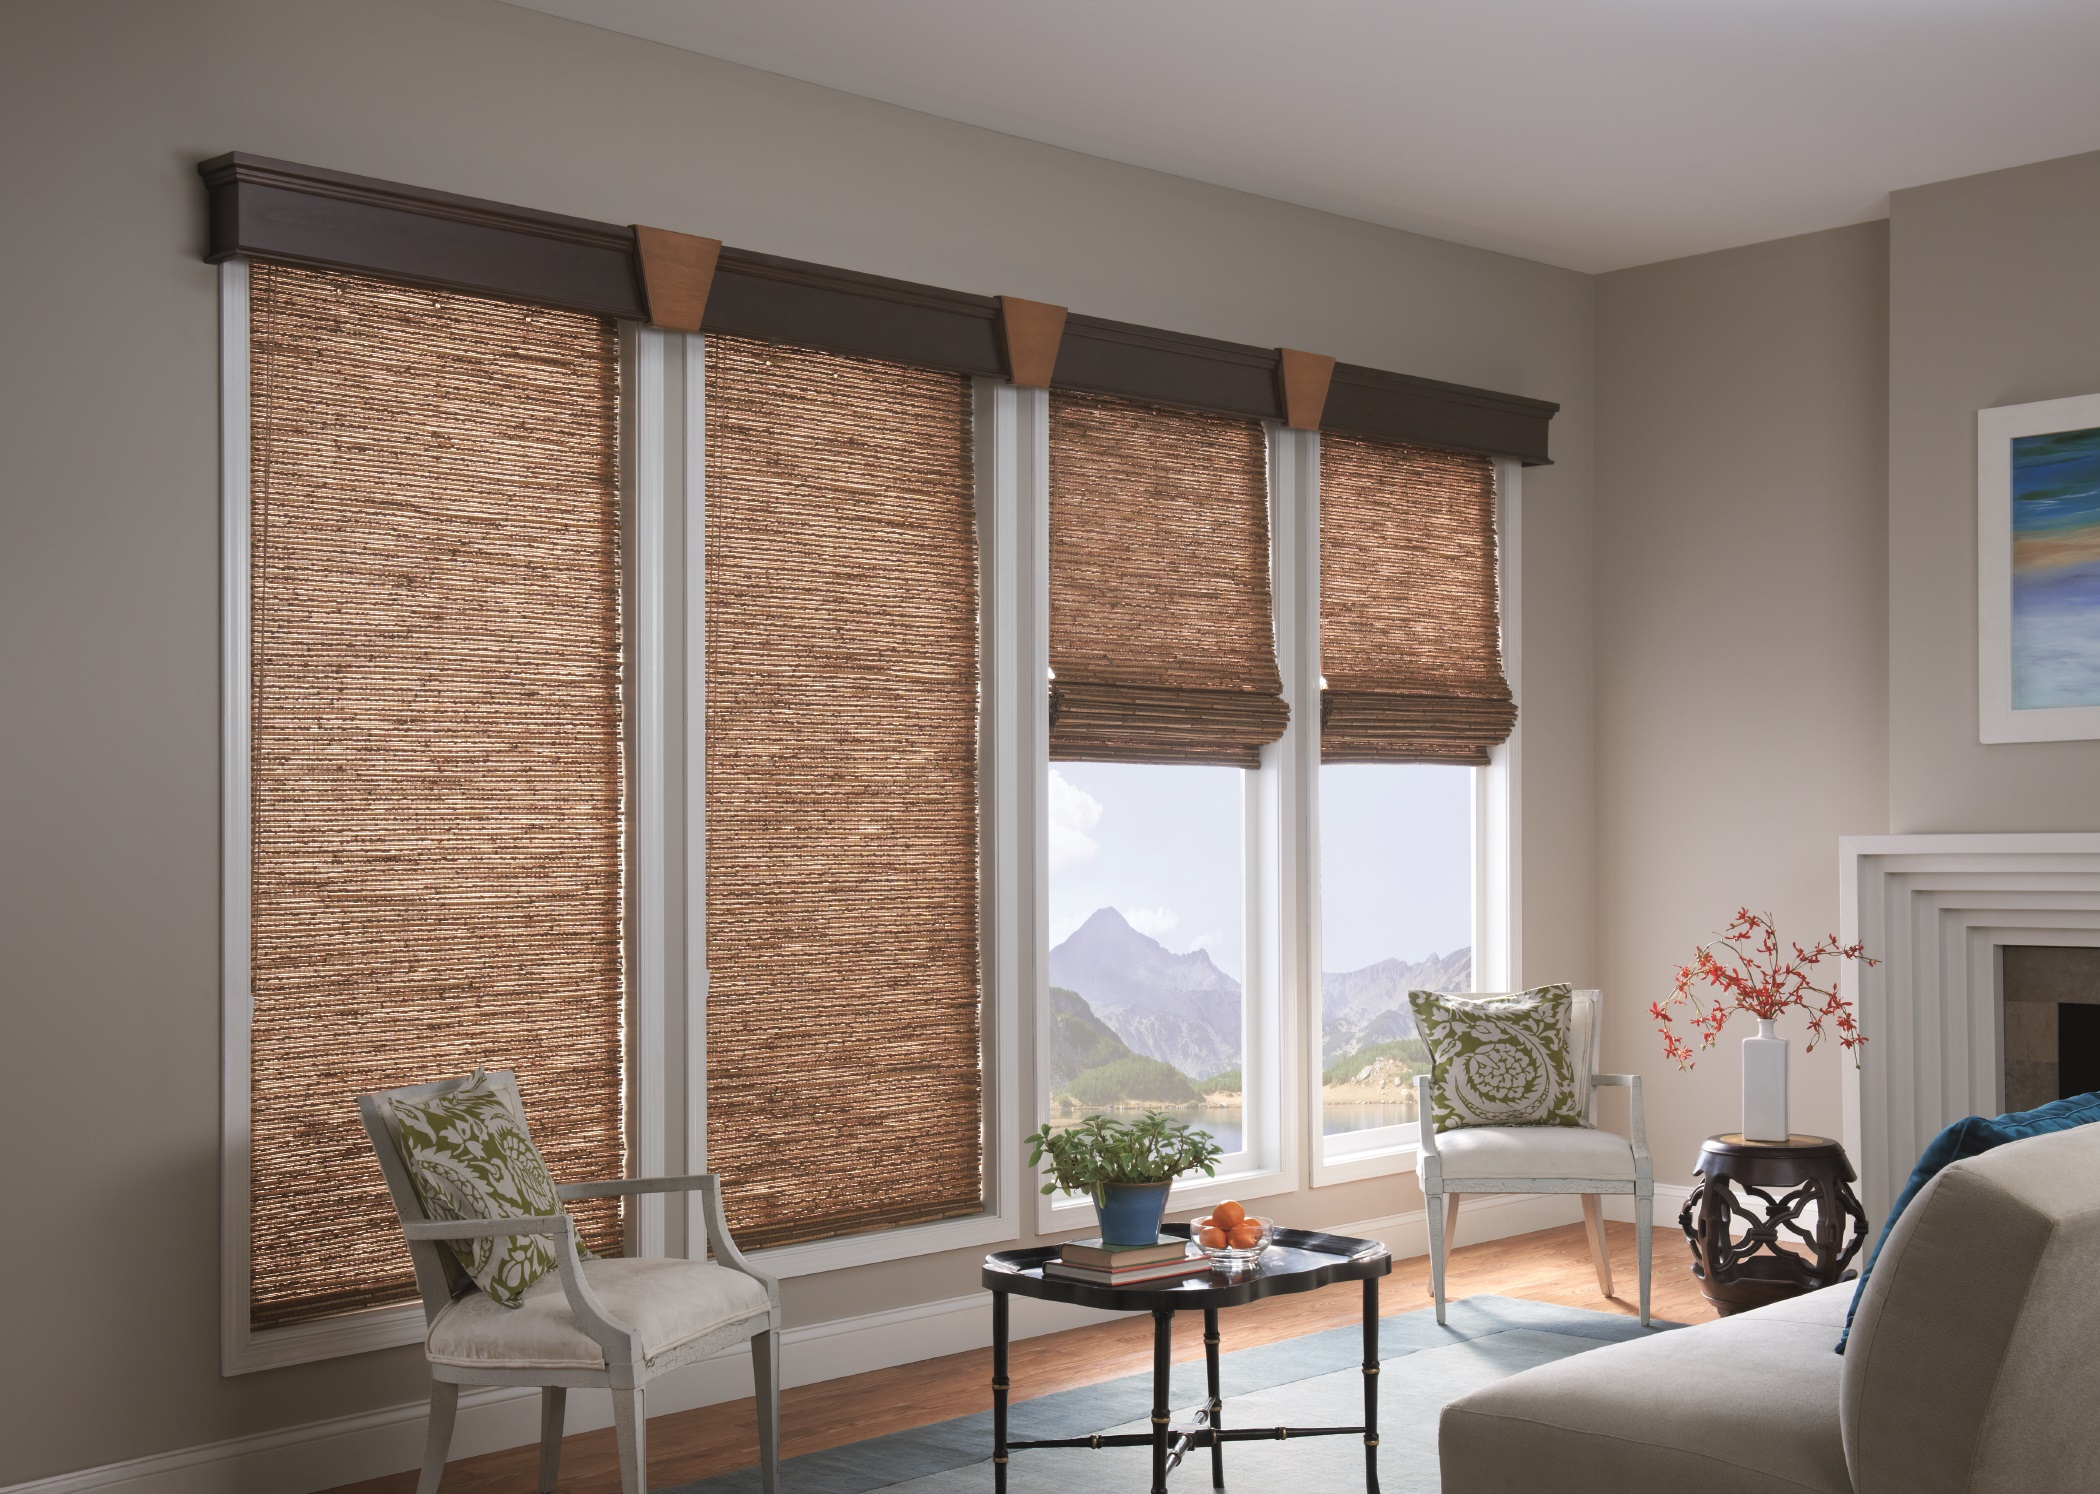 Natural Shades allow a cultivated sophisticated style with on-trend colors and textures, while providing a renewable, rustic look that feels exciting and new.  Environmentally-friendly materials are used to help incorporate green products into homes.